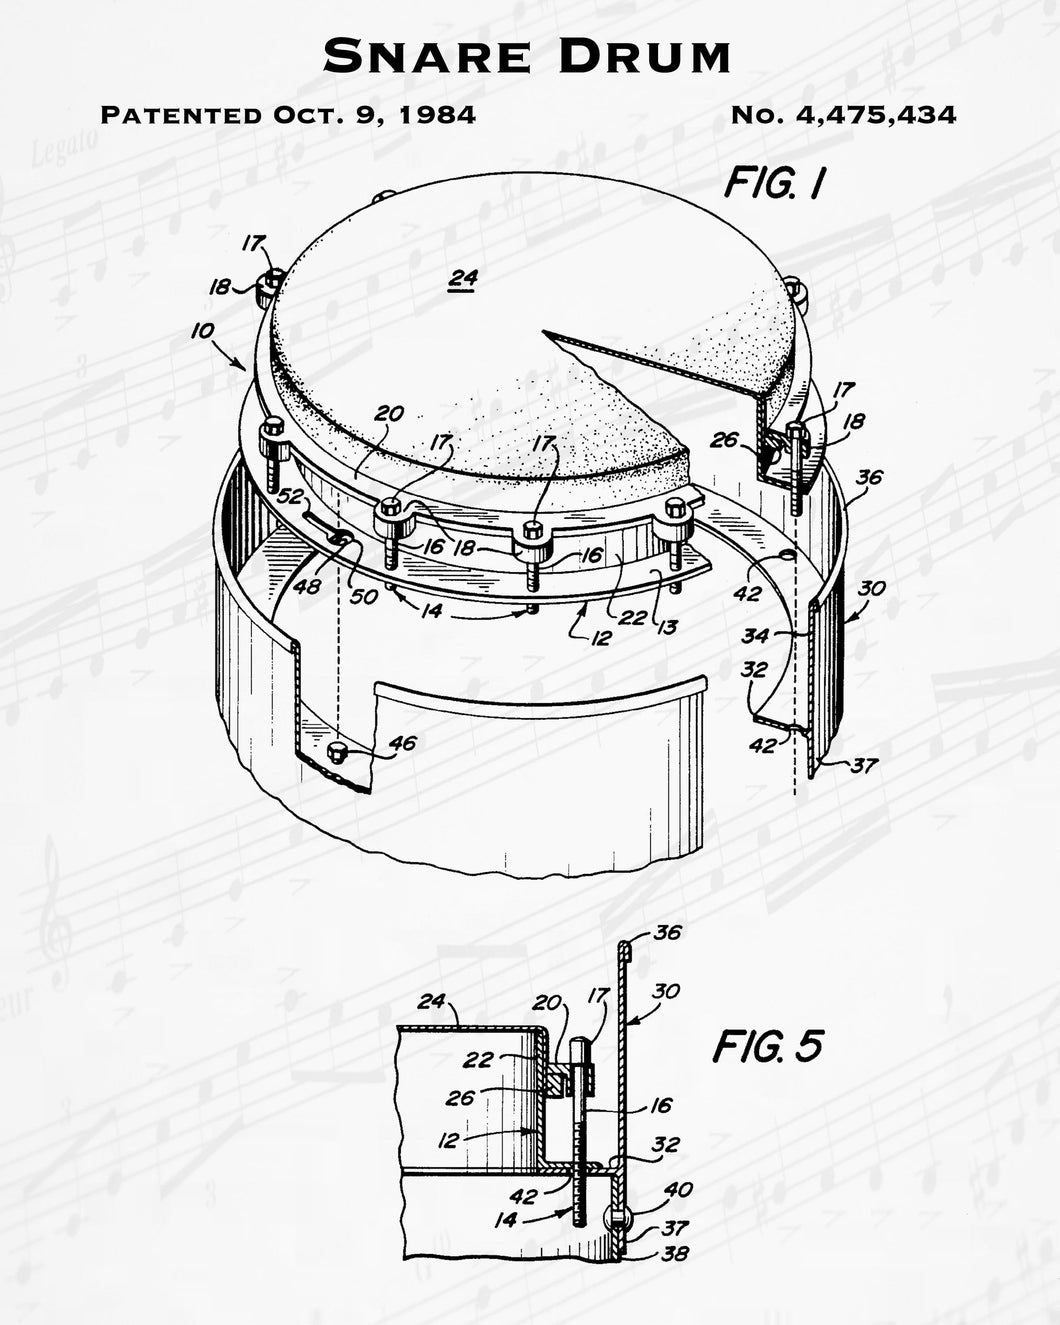 1984 Snare Drum Patent - 8X10 Digital Download Patent